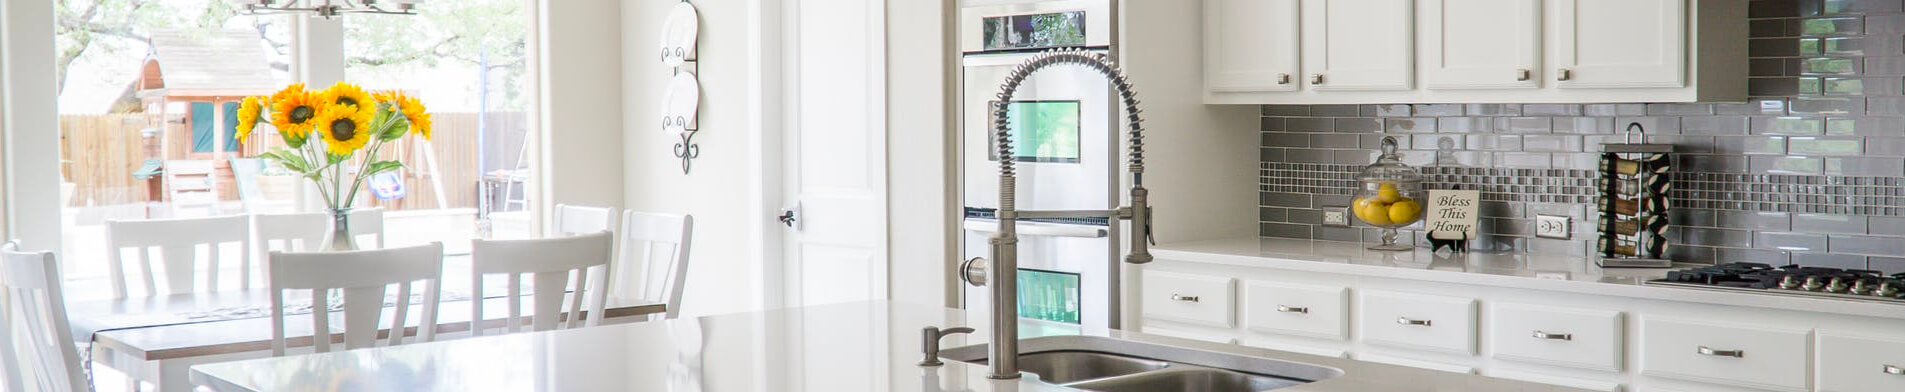 faucet for your sink